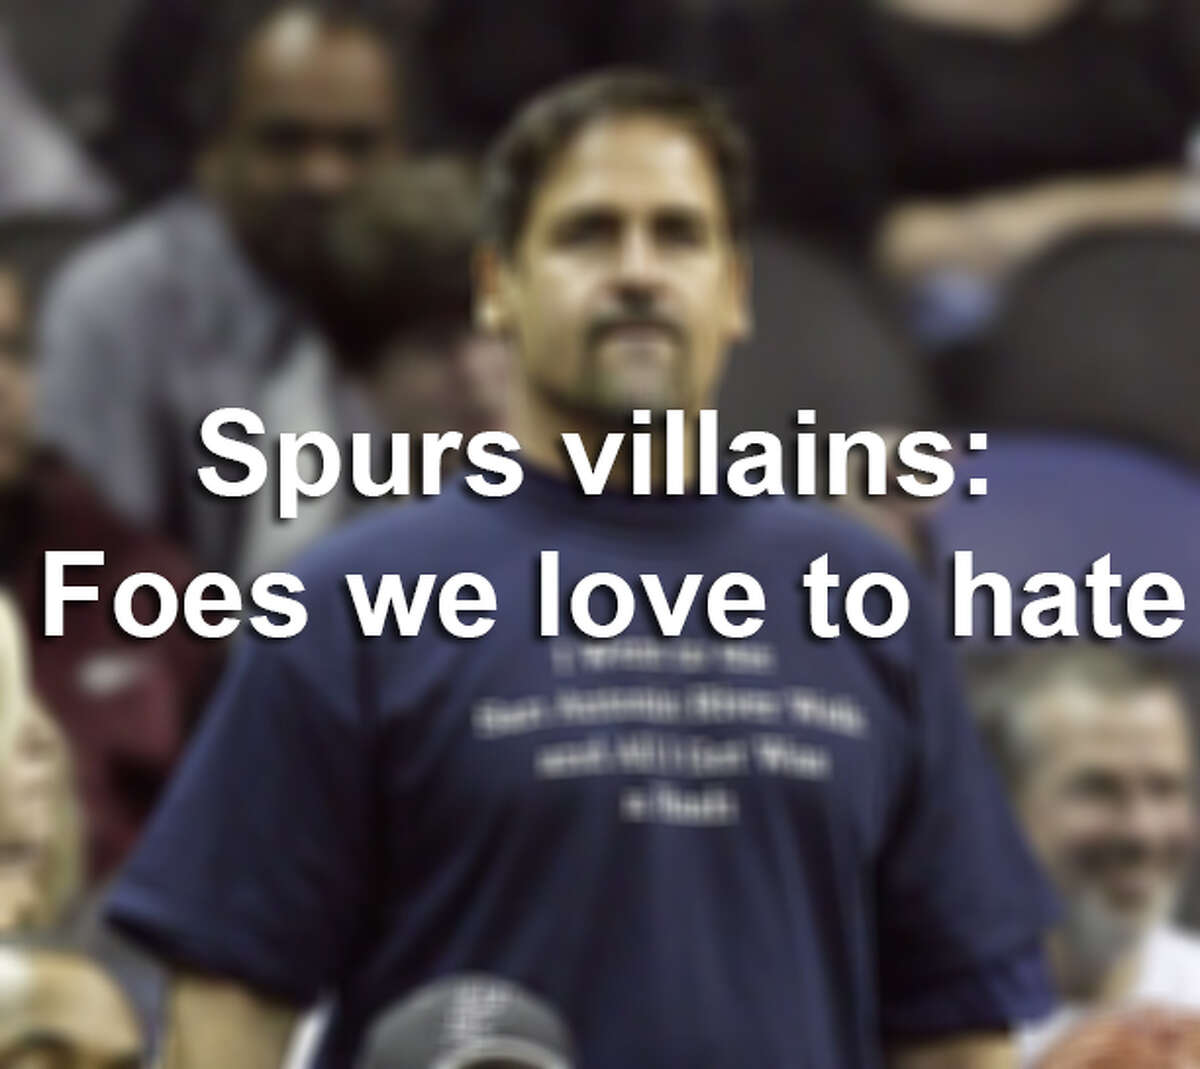 Spurs villains: Foes we love to hate.